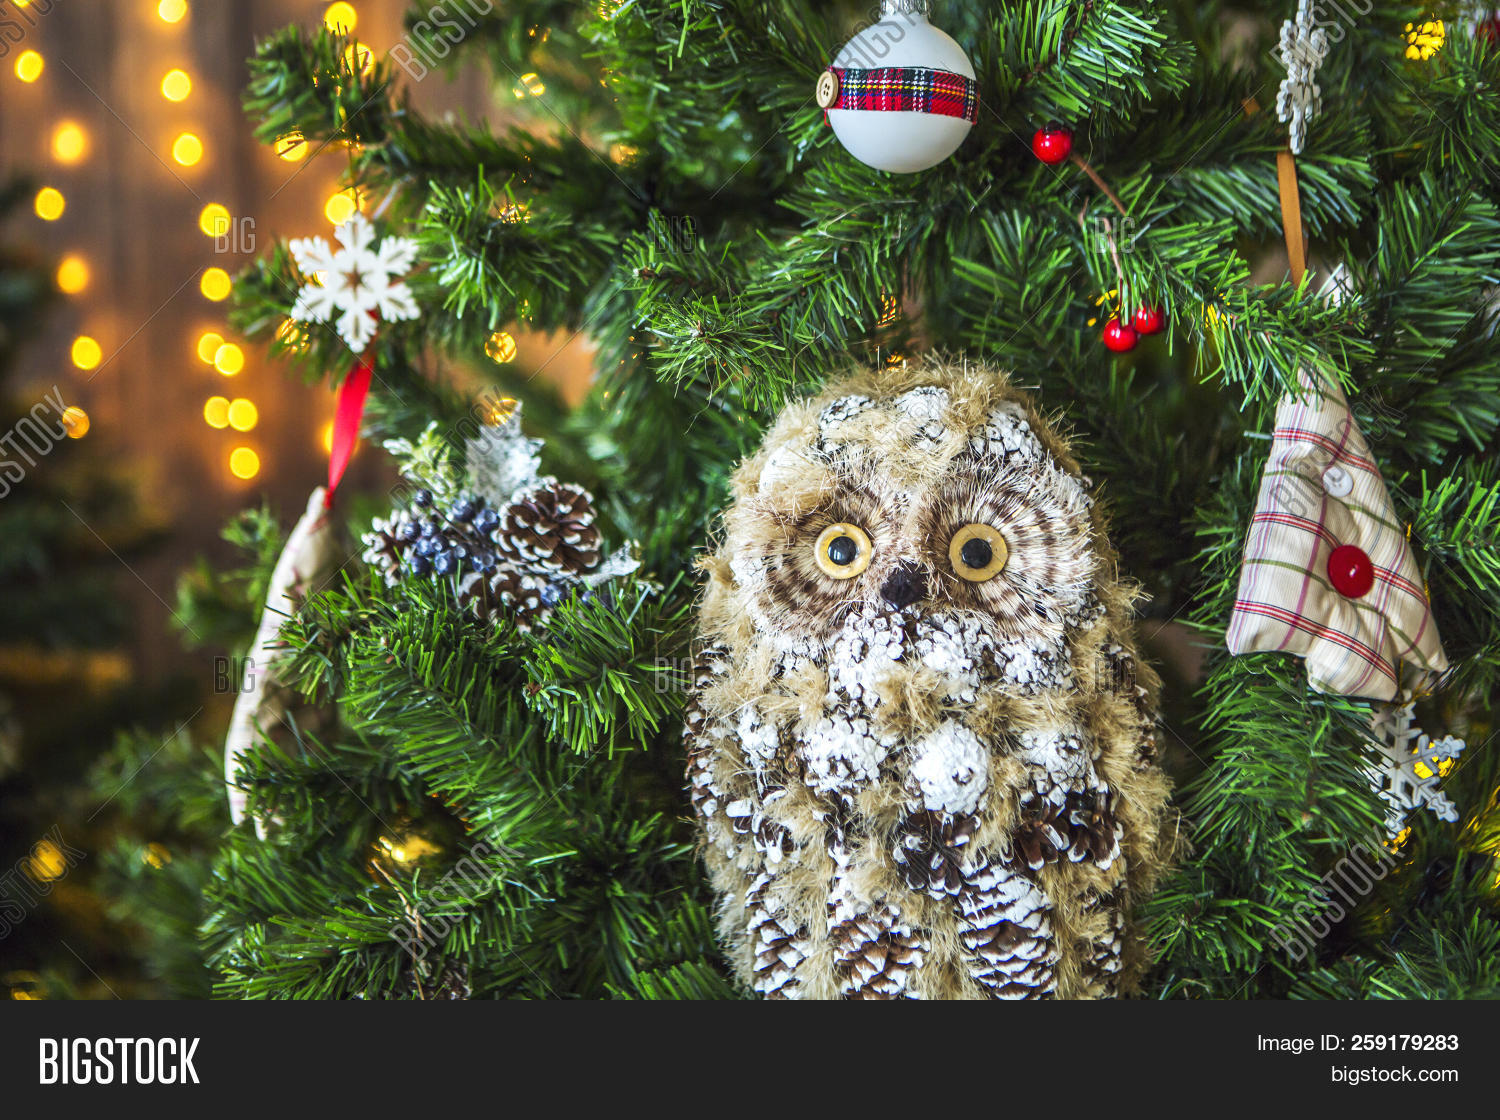 related premium stock photos - Christmas Tree Decorated With Owls